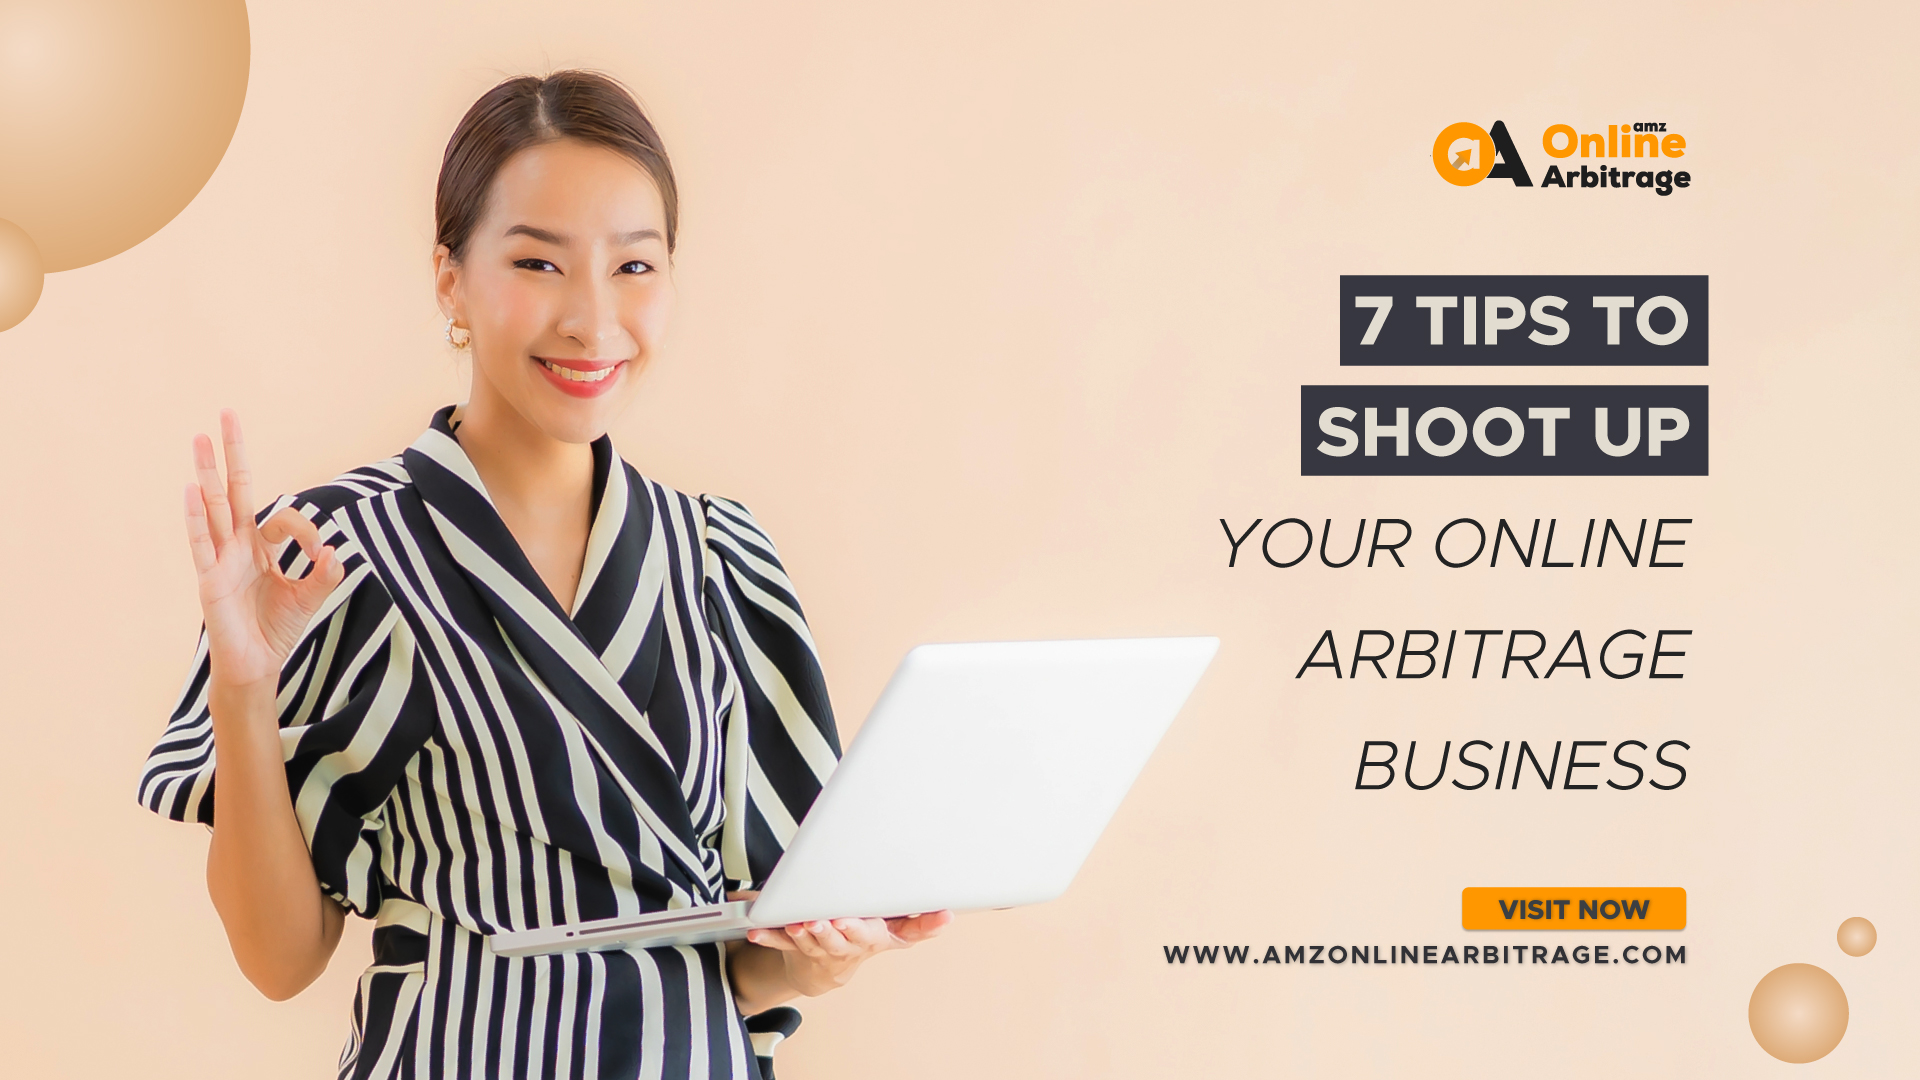 7 TIPS TO SHOOT UP YOUR ONLINE ARBITRAGE BUSINESS